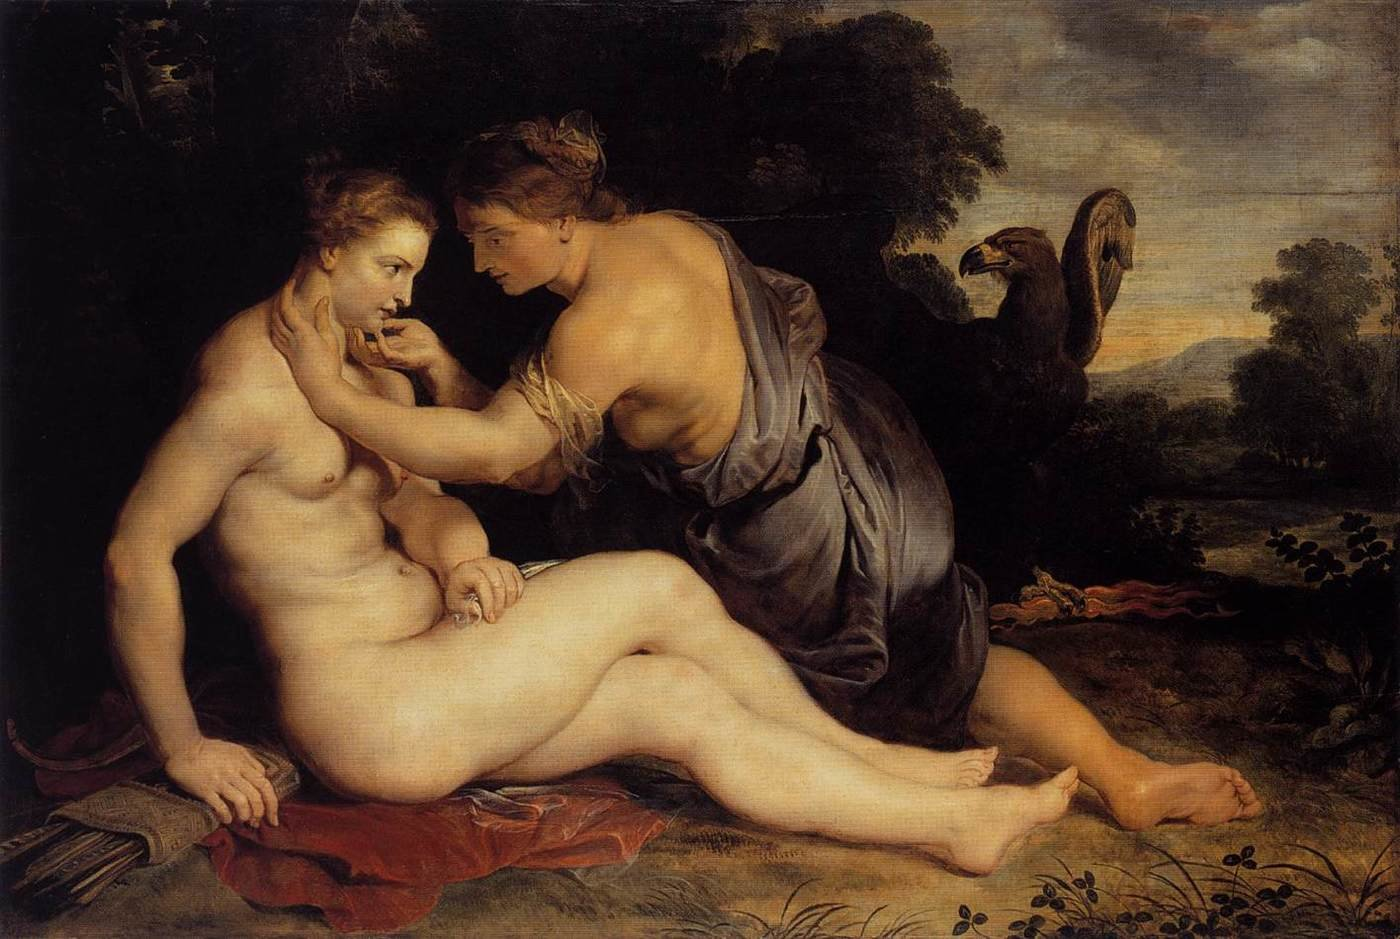 Peter Paul Rubens background